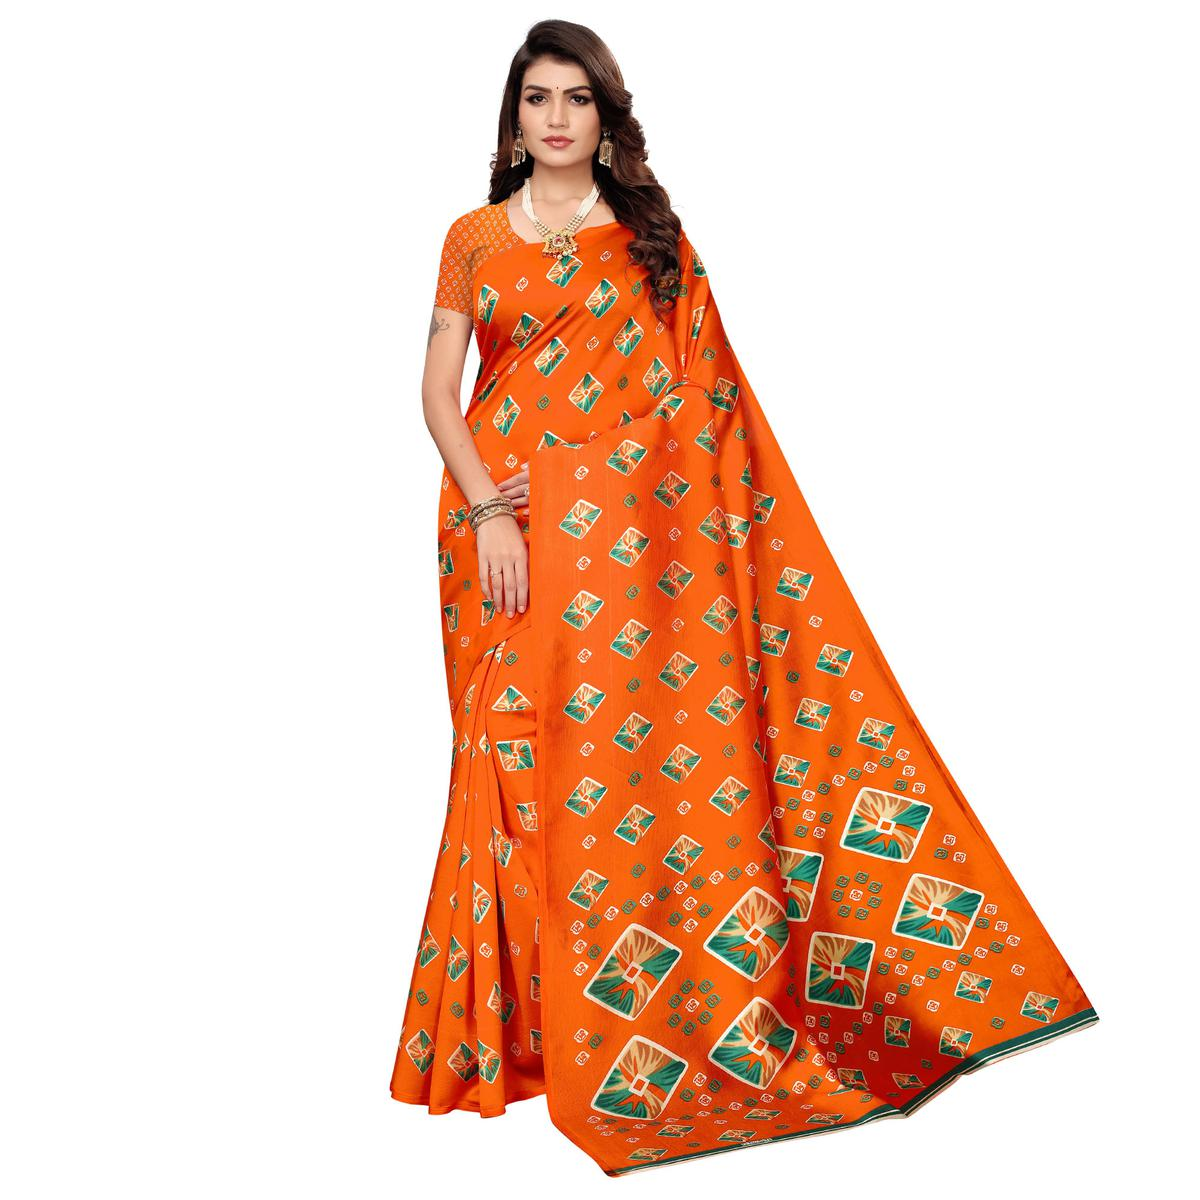 Marvellous Dark Orange Colored Casual Printed Mysore Art Silk Saree